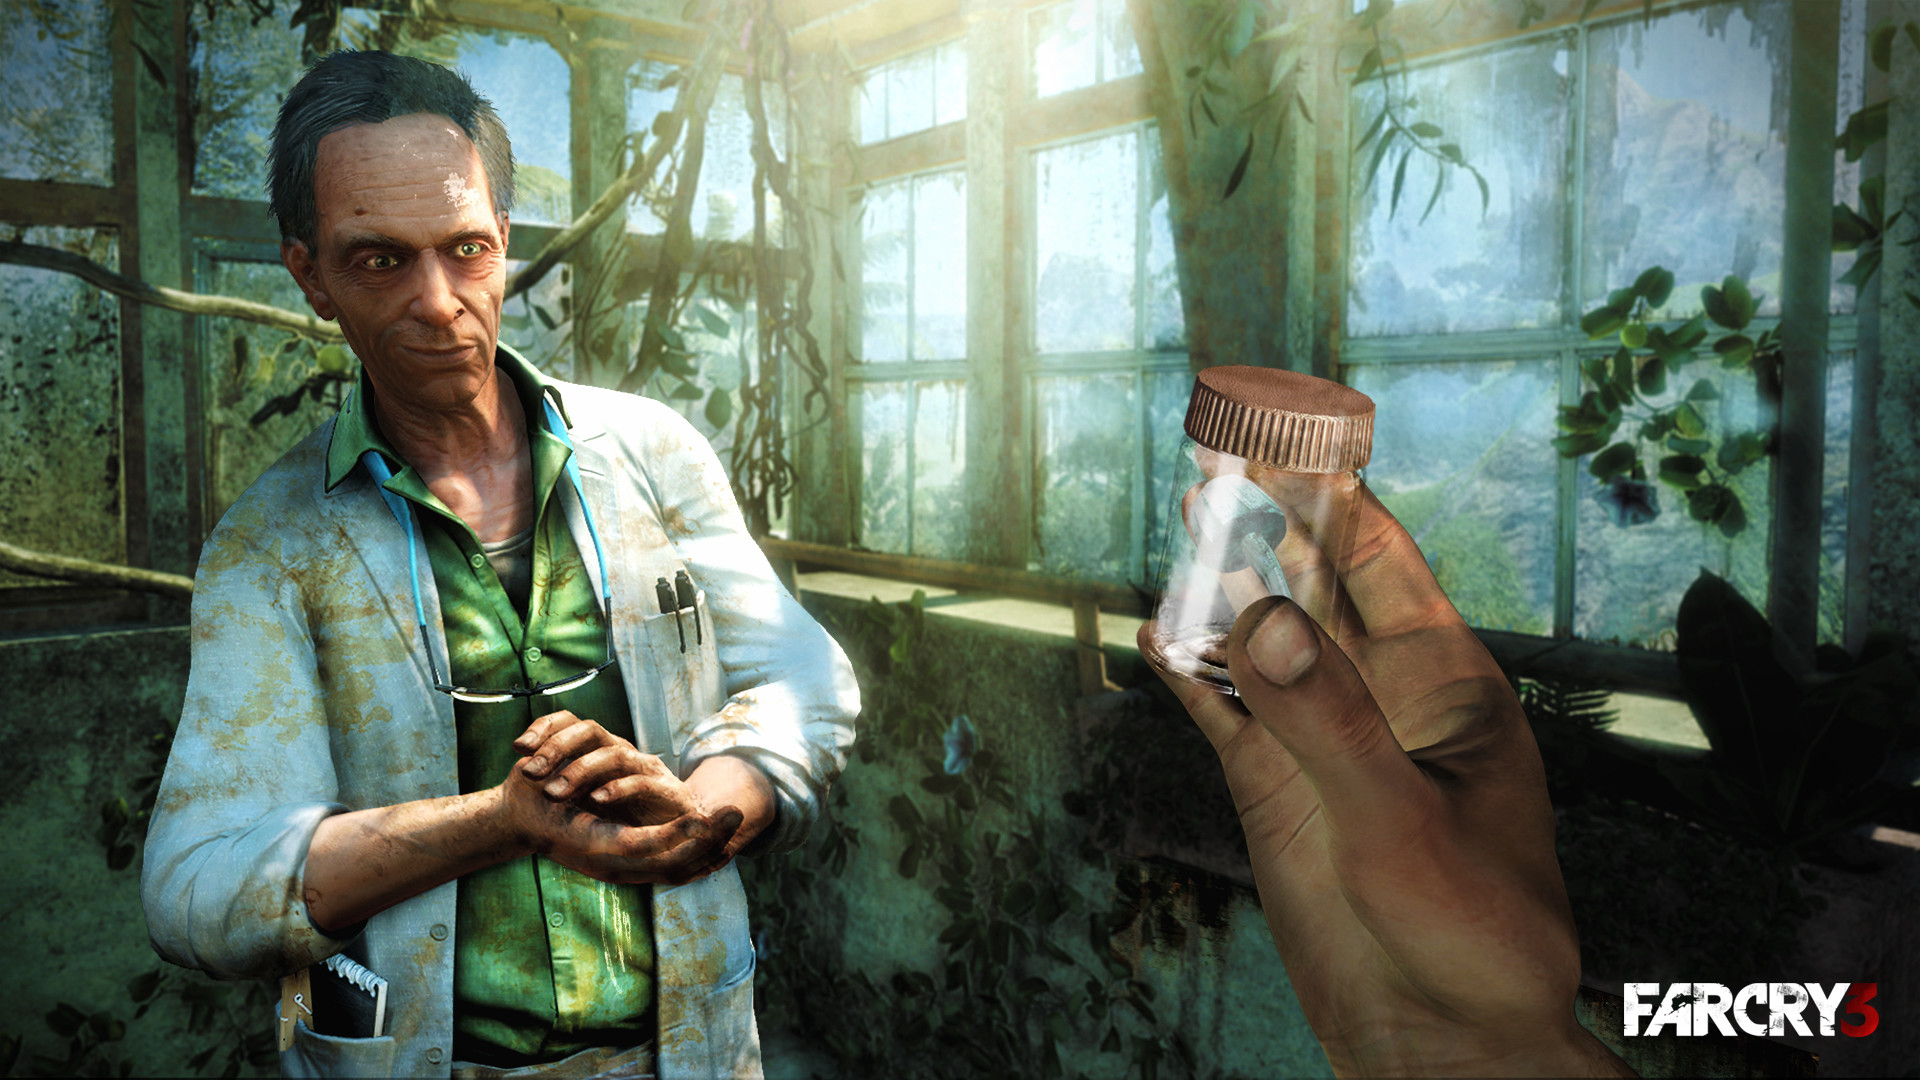 Tags:far cry 3 hd wallpapers · hd wallpapers · kickass gaming wallpapers ·  linux hd wallpapers · windows hd wallpapers